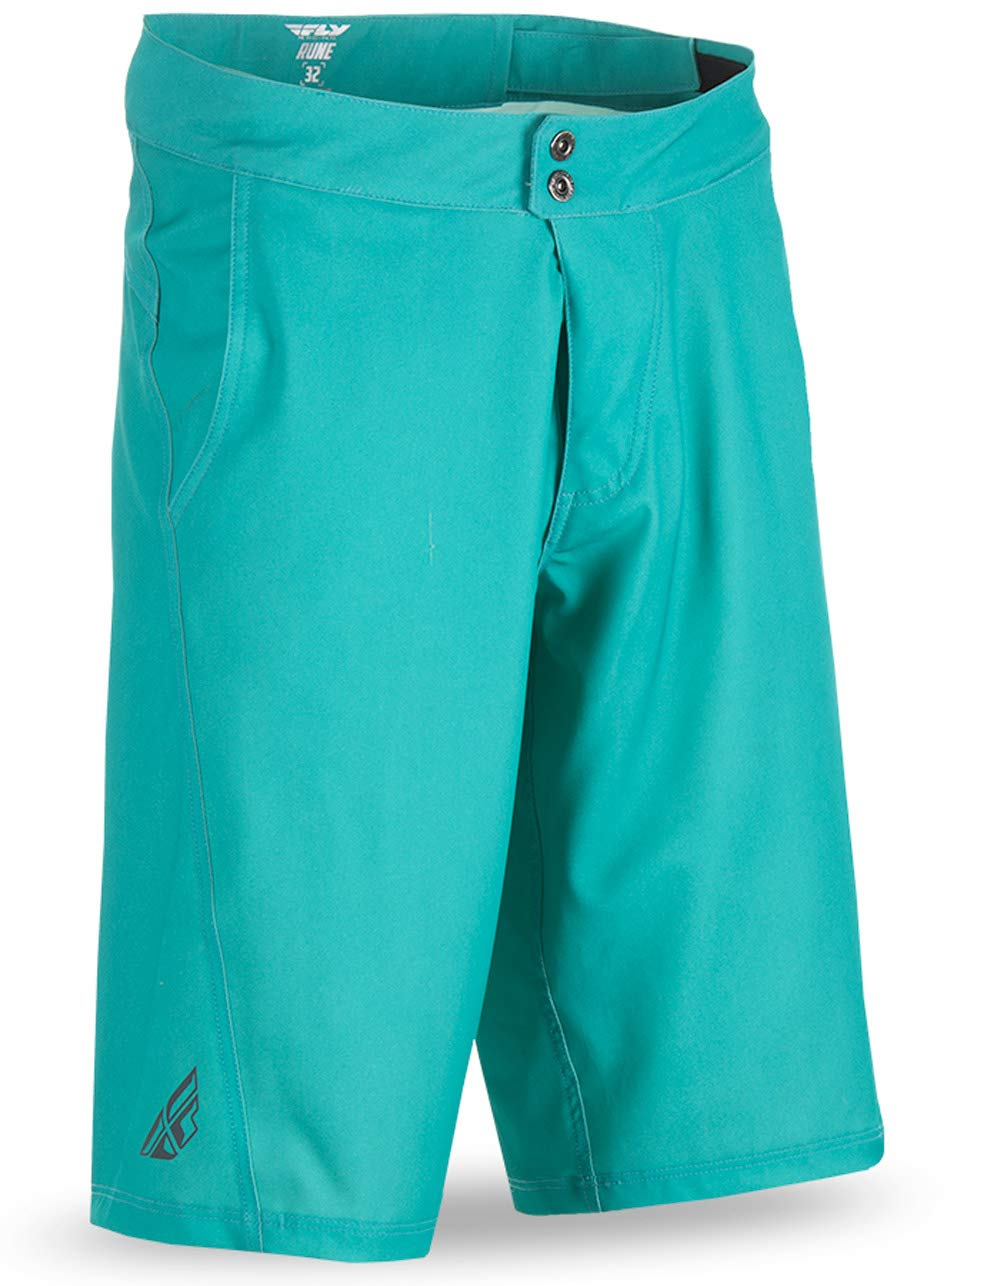 Fly Racing Unisex-Adult Rune Shorts Teal Size 32 353-25932